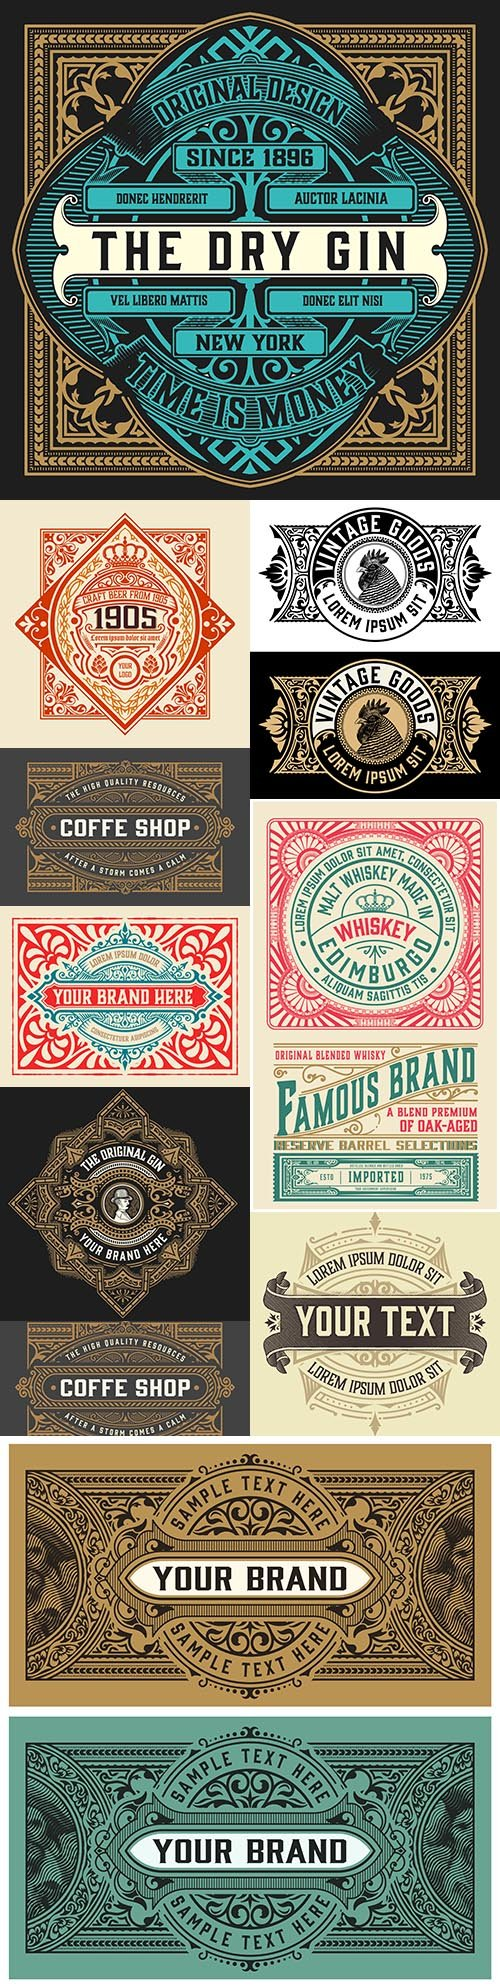 Vintage label whiskey with decorative elements